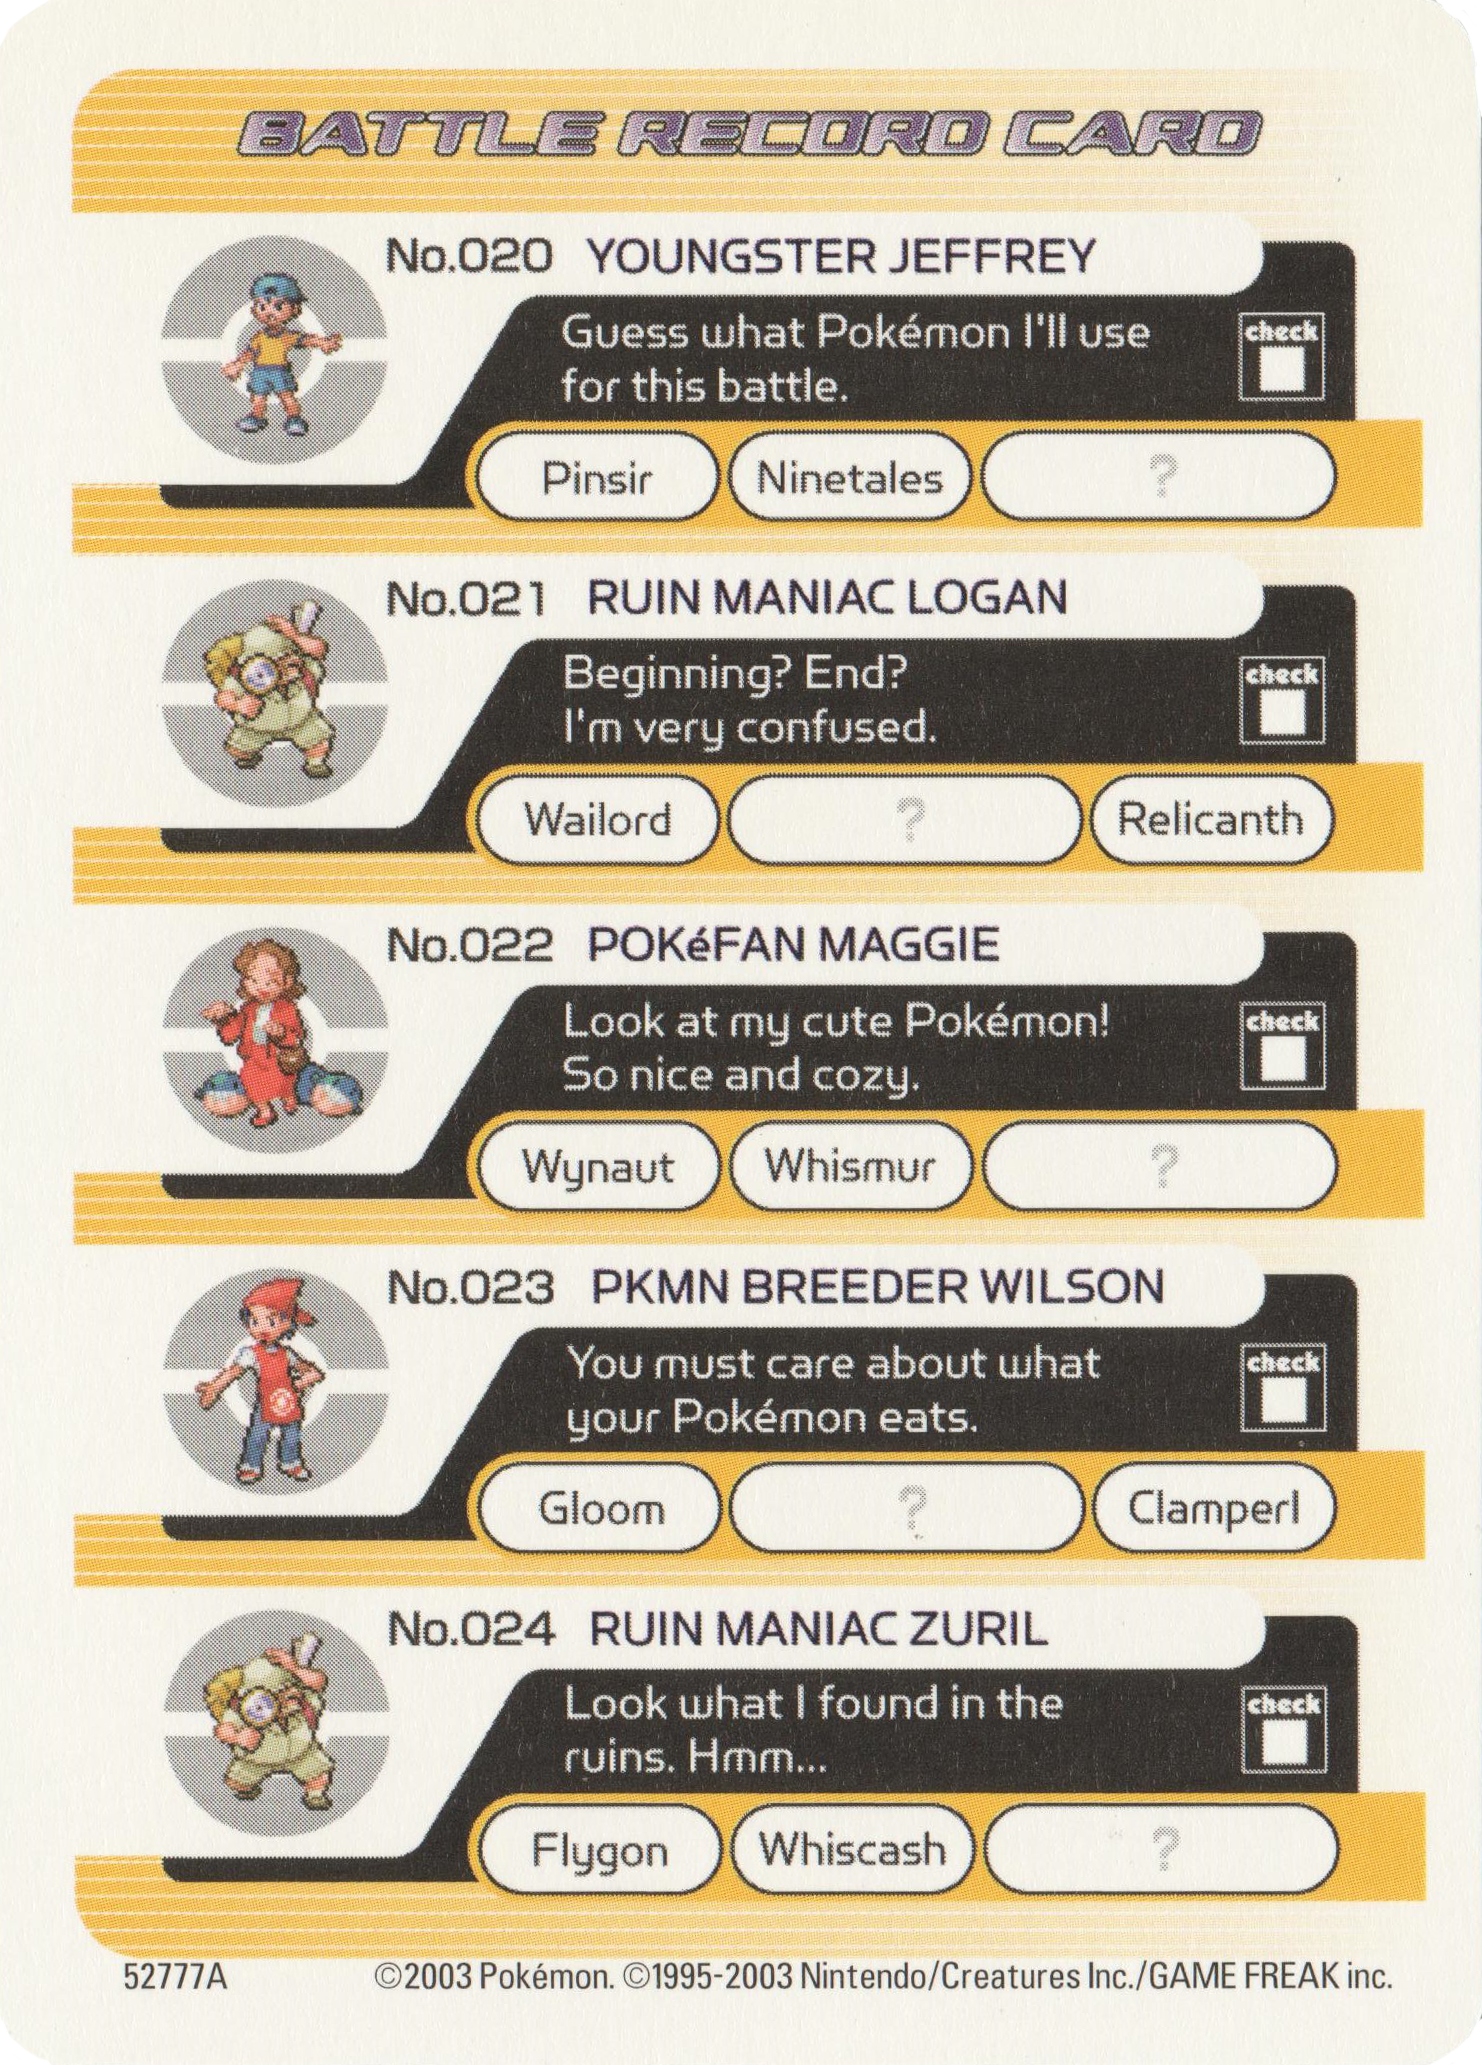 Battle Record Card (4).png